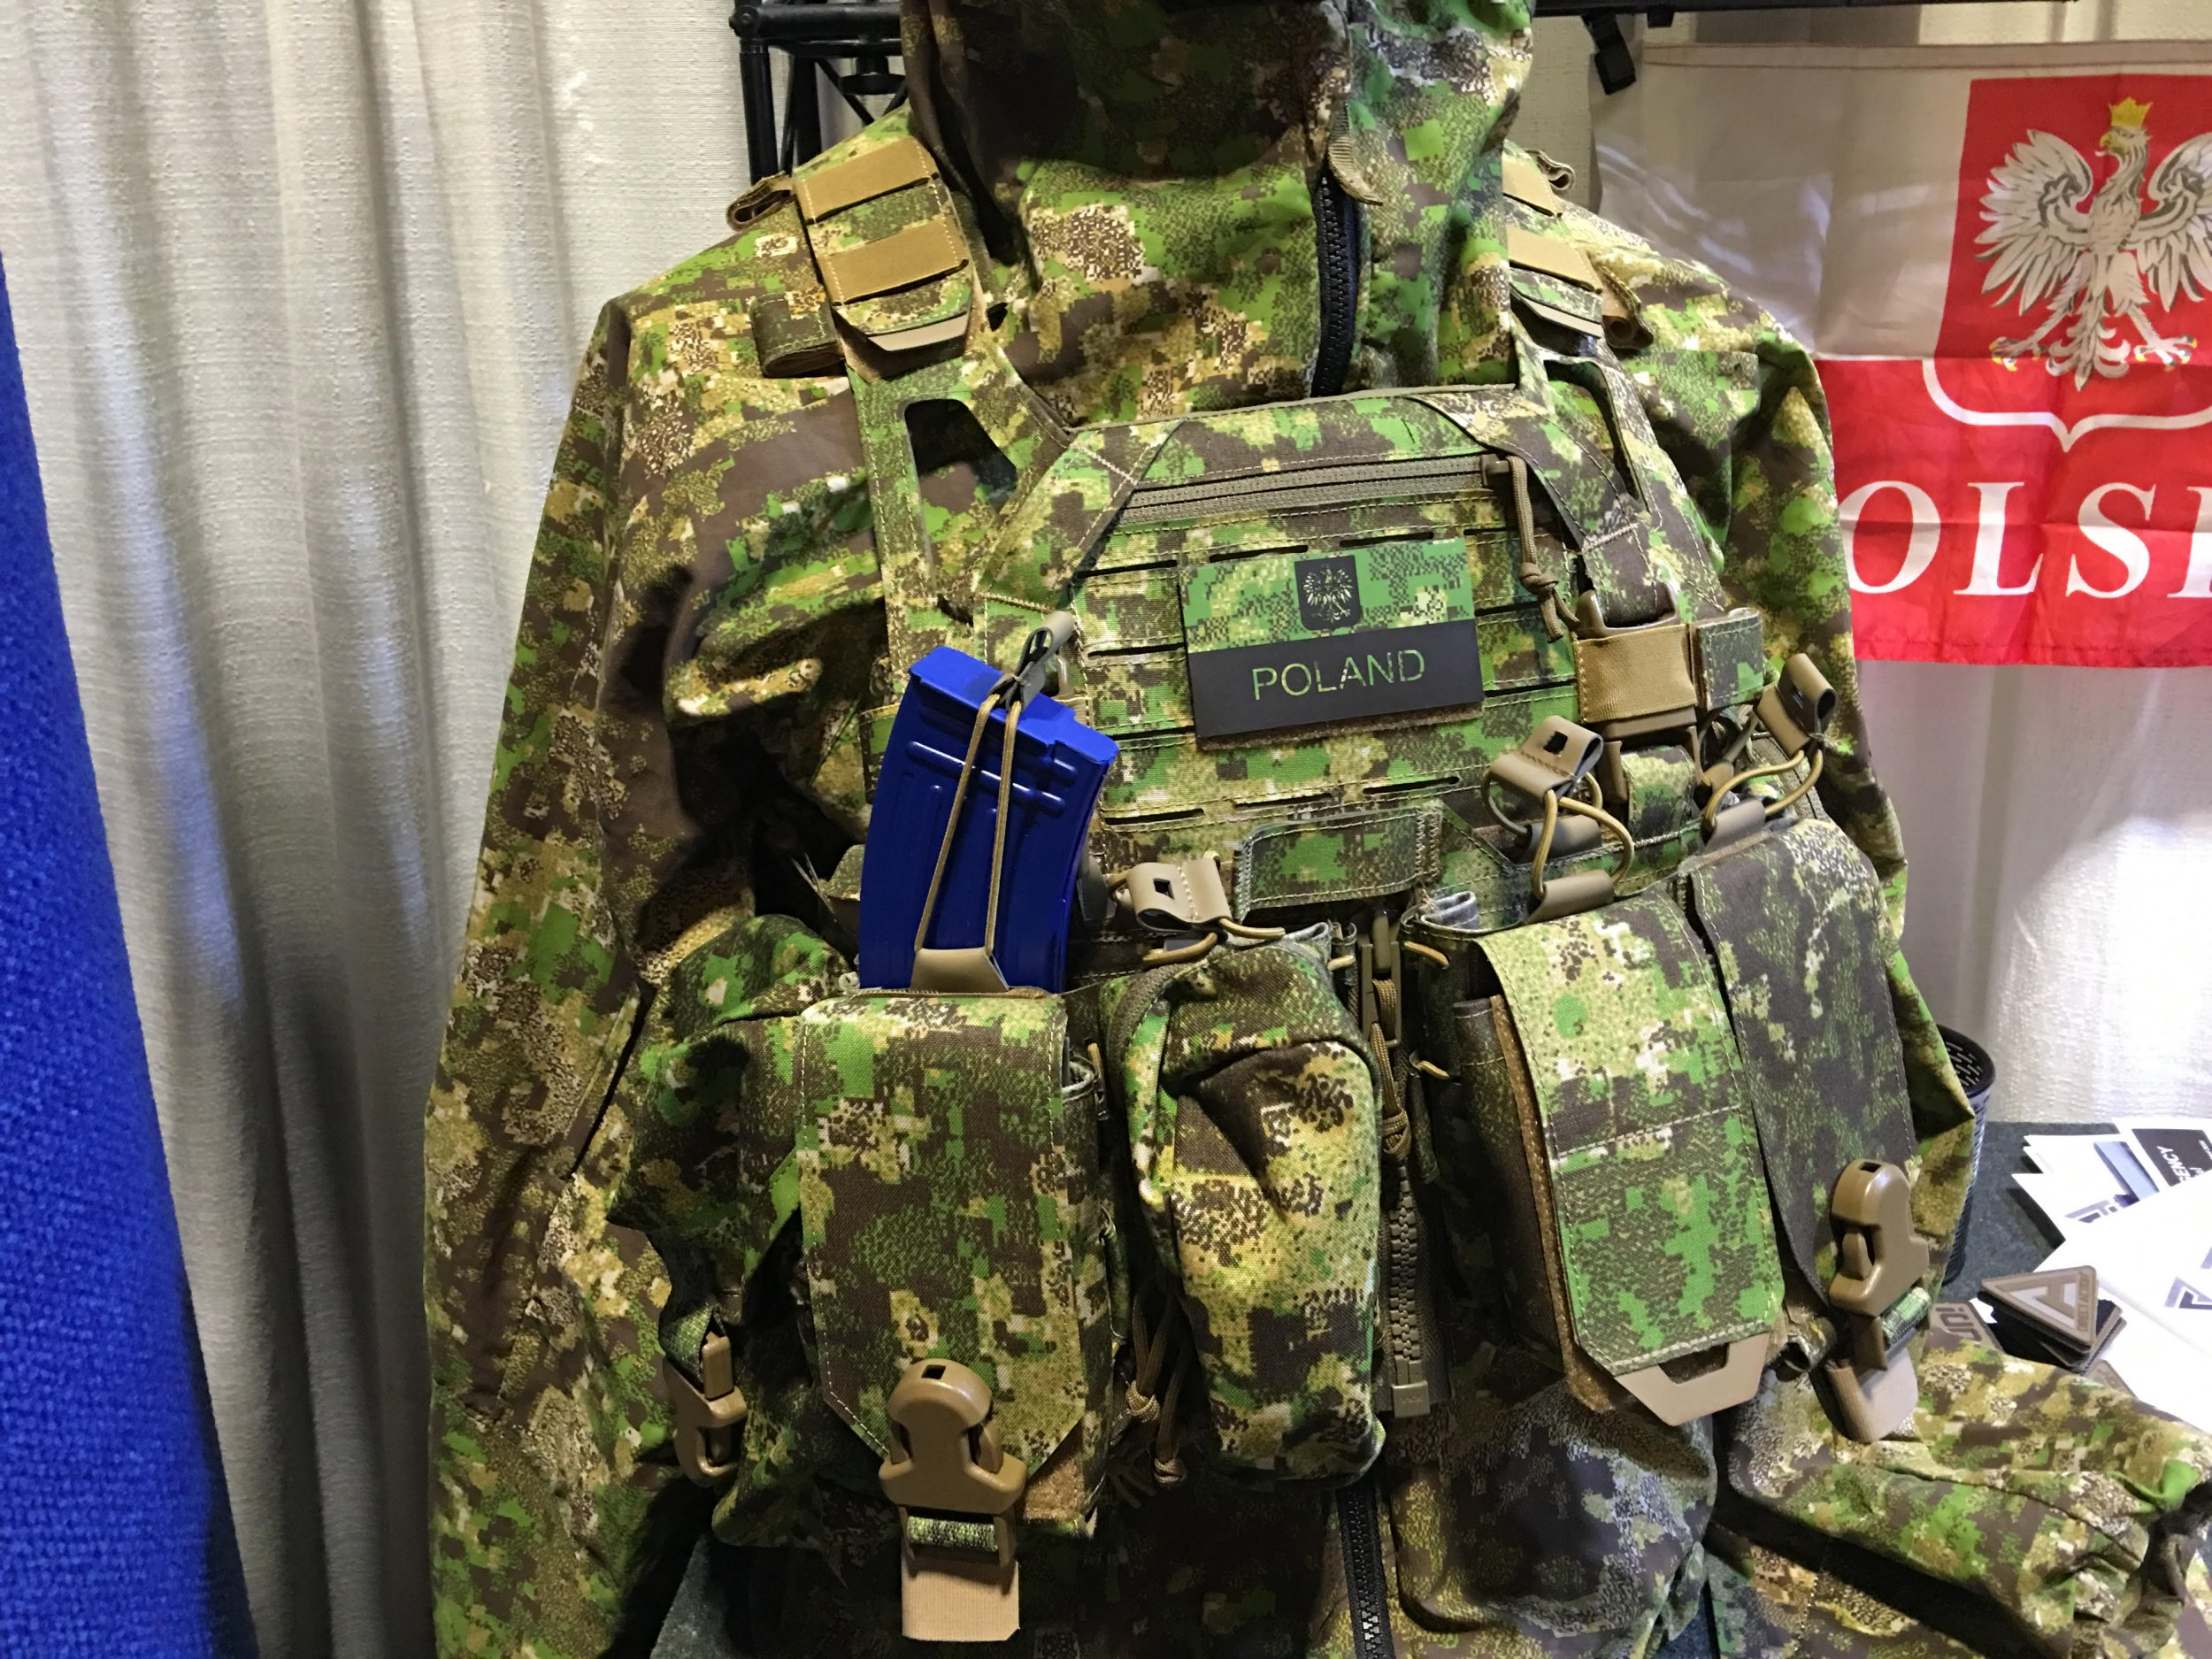 1fbaf07688b7 Direct Action Advanced Tactical Gear Systems Spitfire Modular Tactical  Armor Plate Carrier Outfitted with Direct Action Hurricane Chest Rig/Rifle  Mag ...